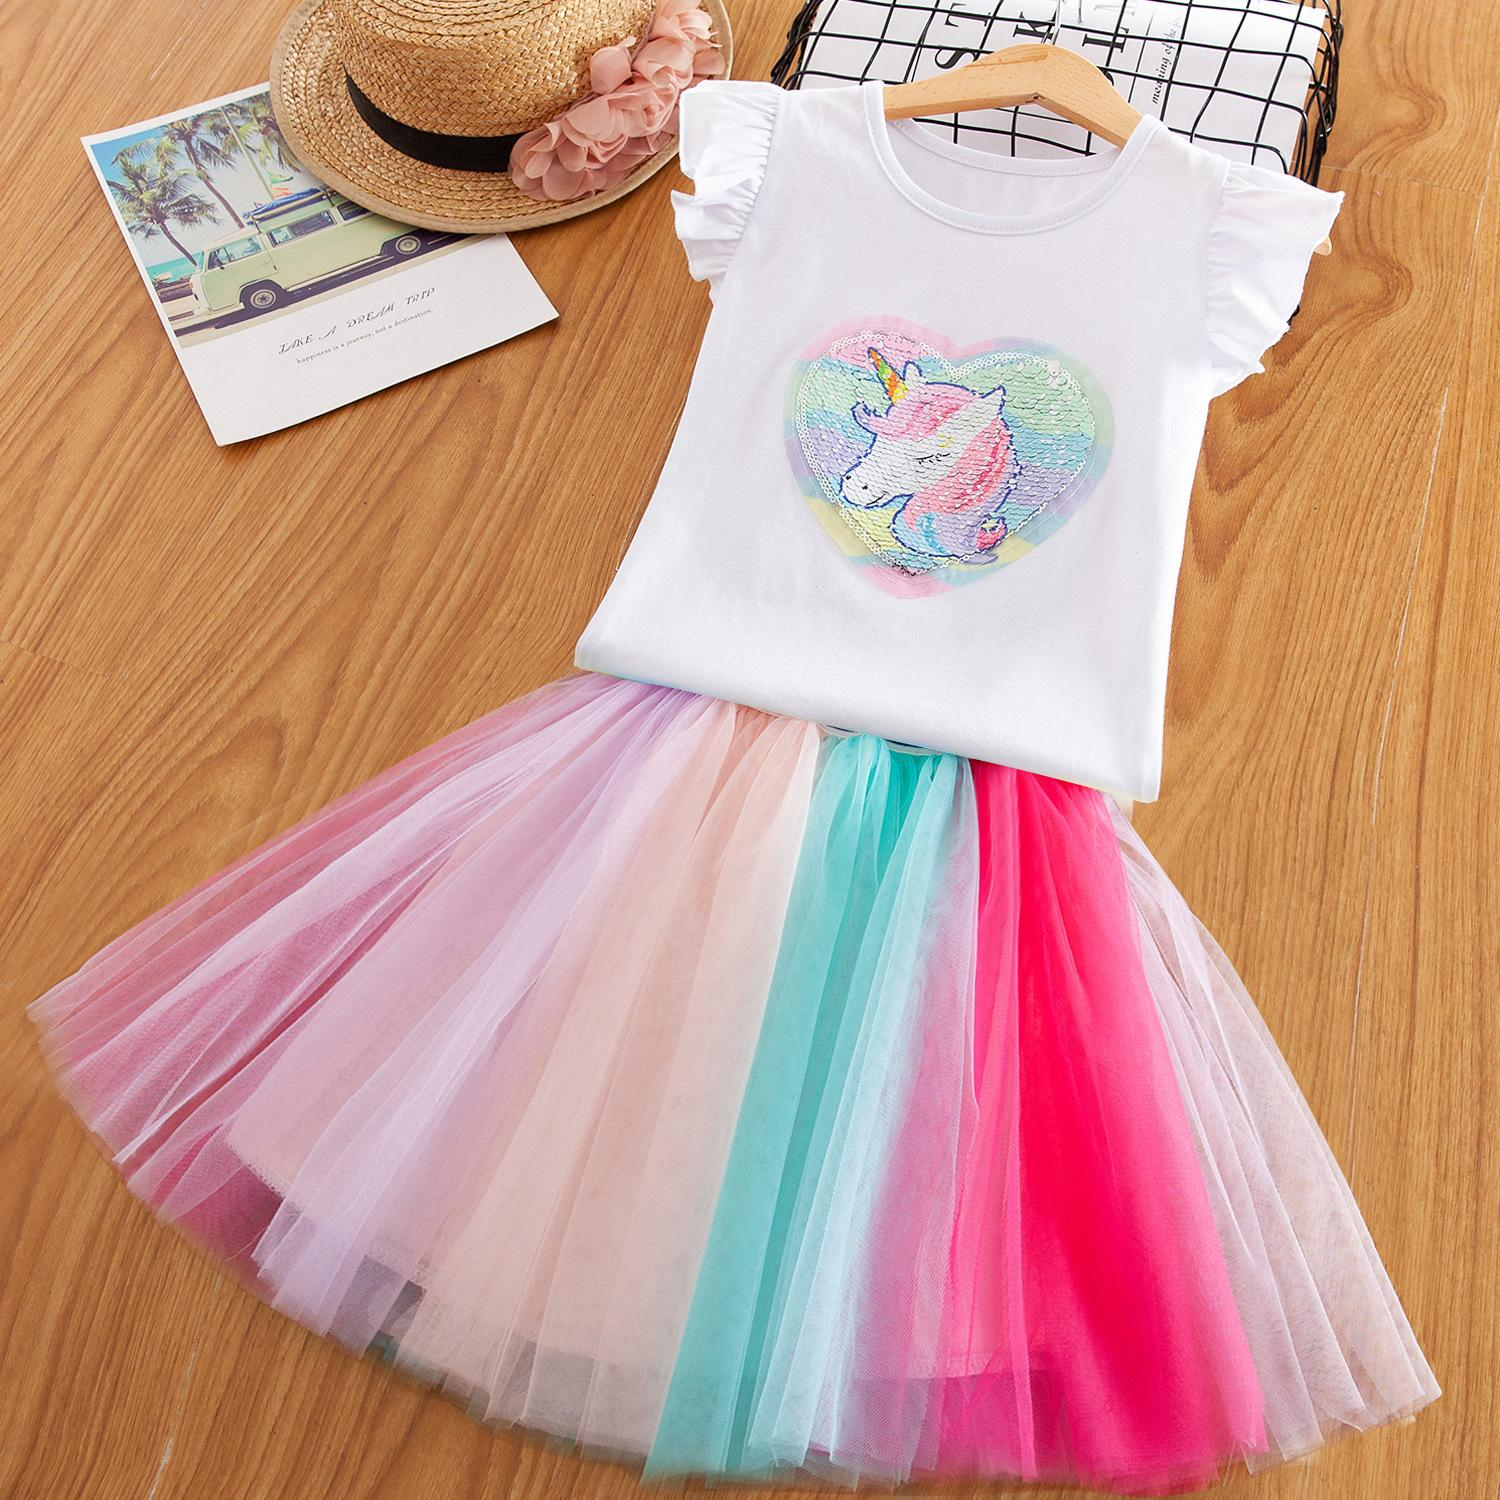 3e81a579a3 2019 Baby Girls Unicorn Outfits Dress Children T Shirts+TuTu Rainbow Skirts  2019 Summer Fashion Boutique Kids Dress Clothing 7 Styles B1 From  Fashion house